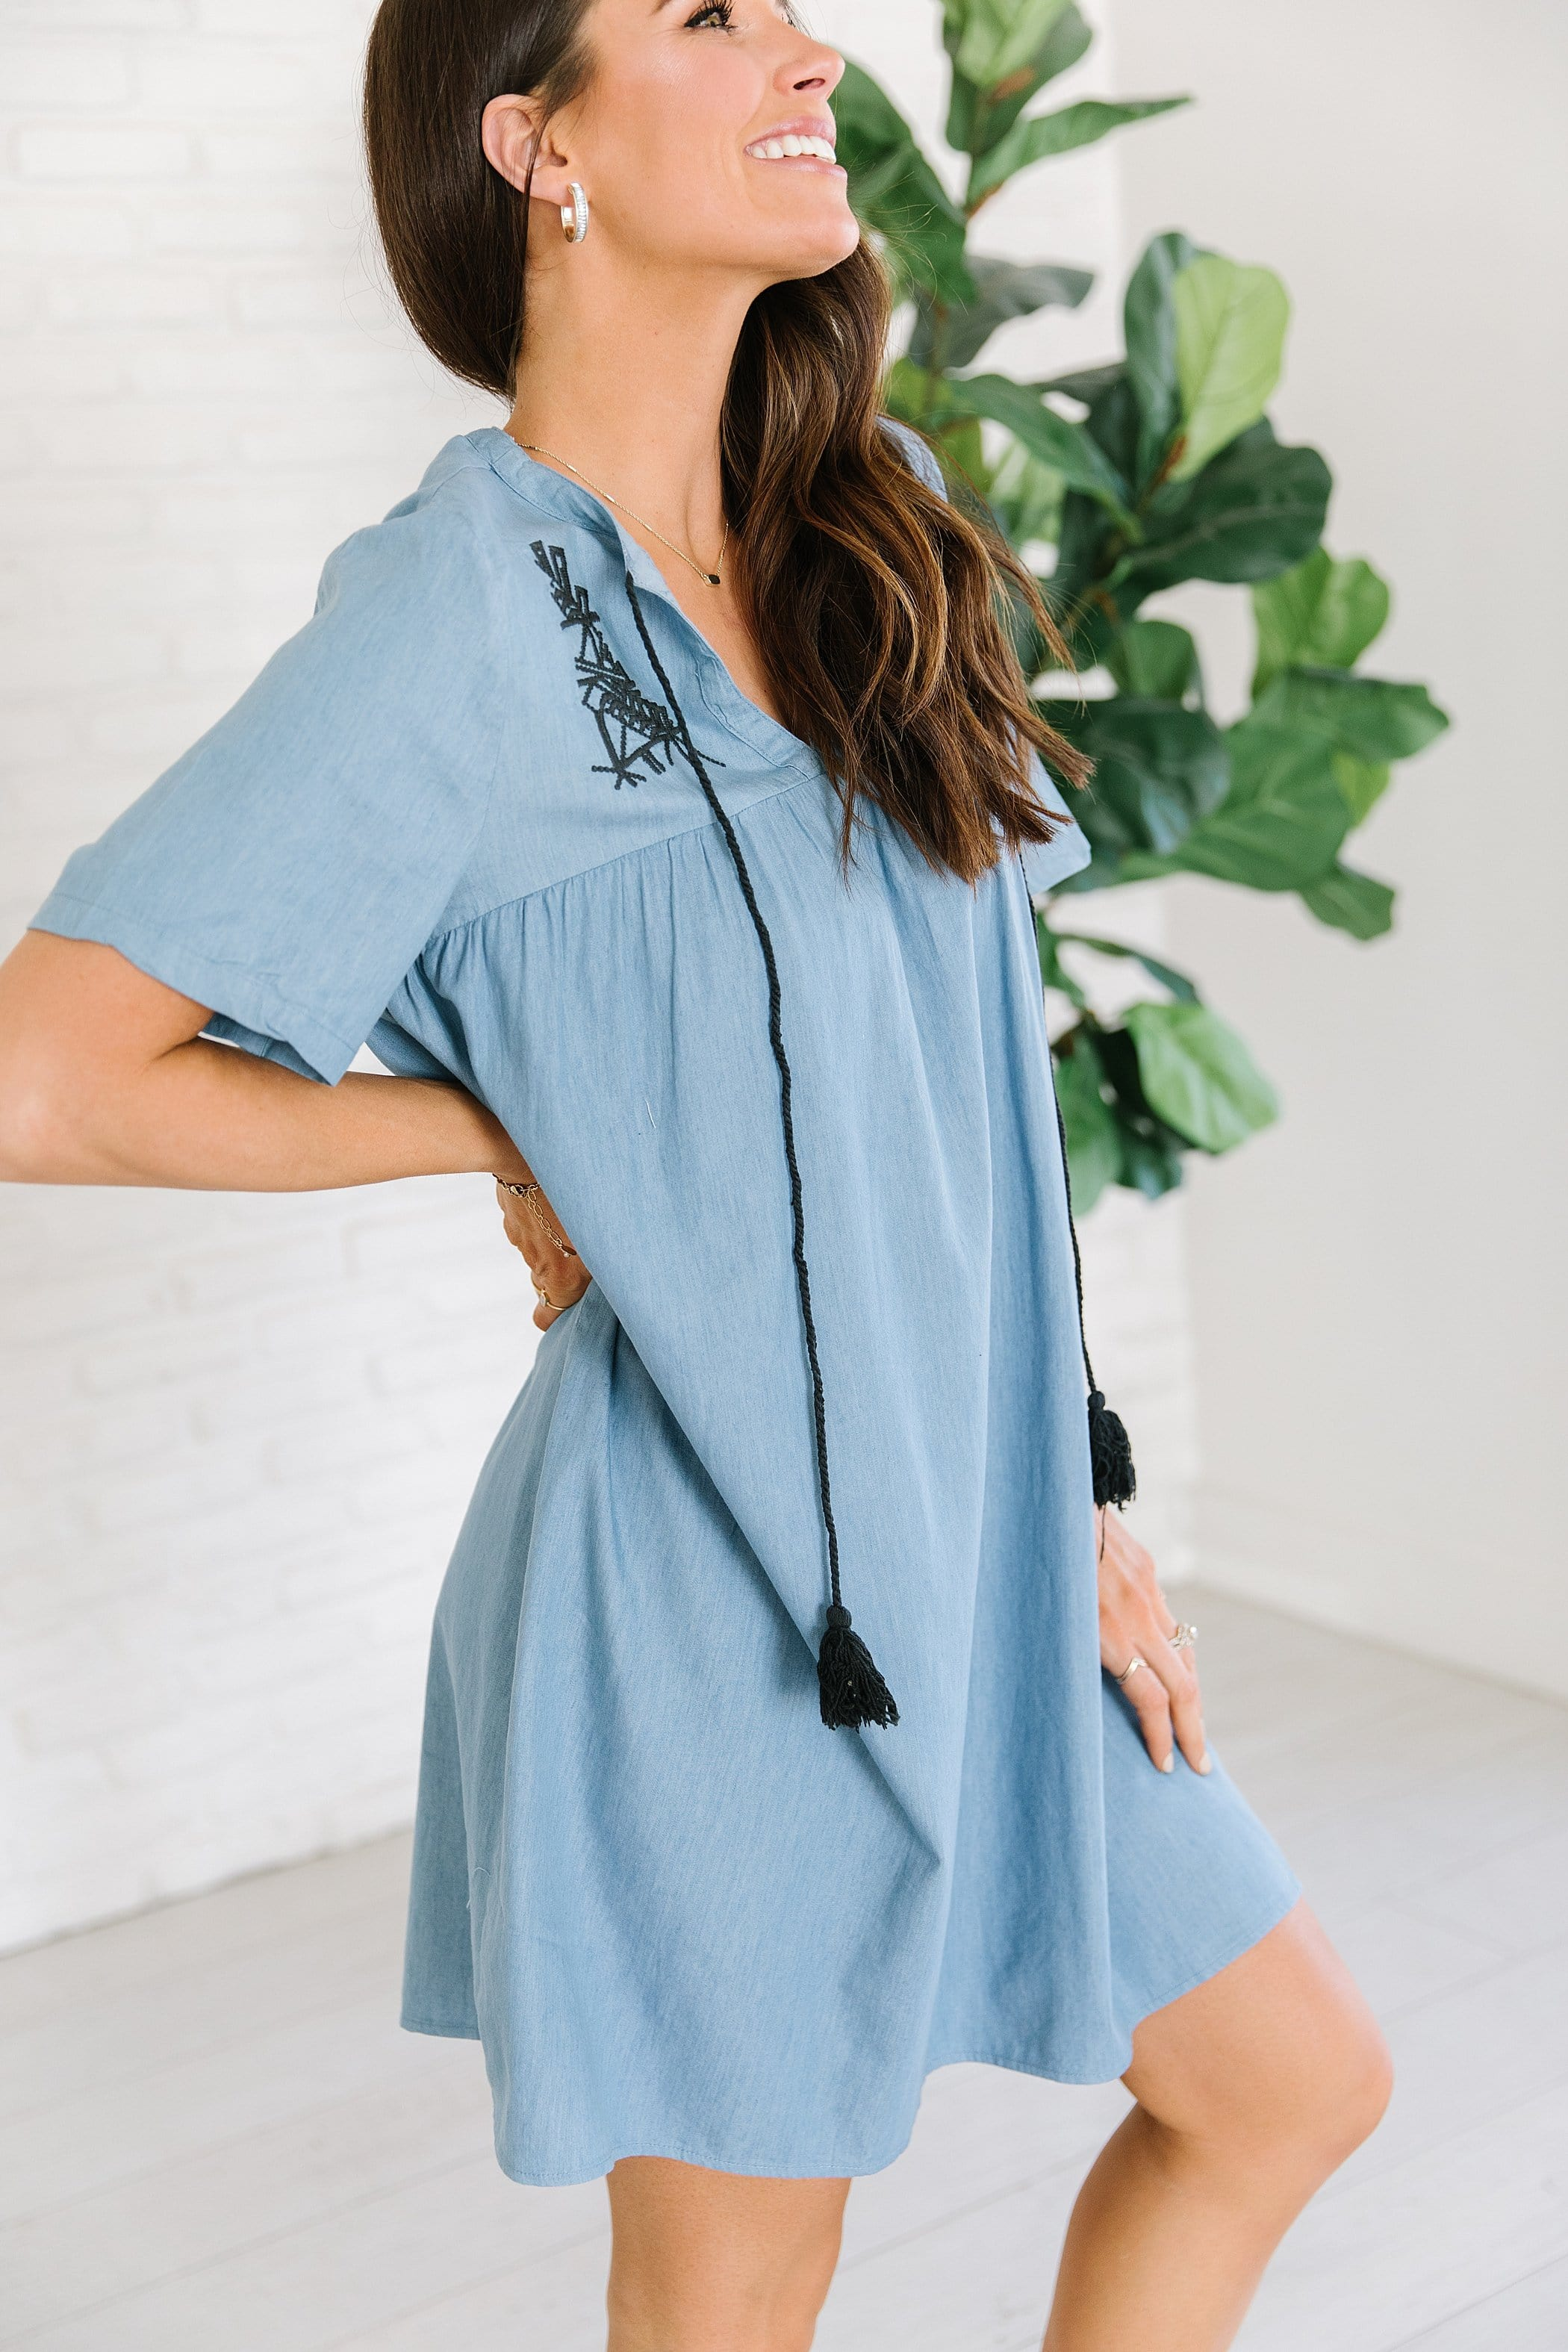 The Downey Embroidered Dress in Denim